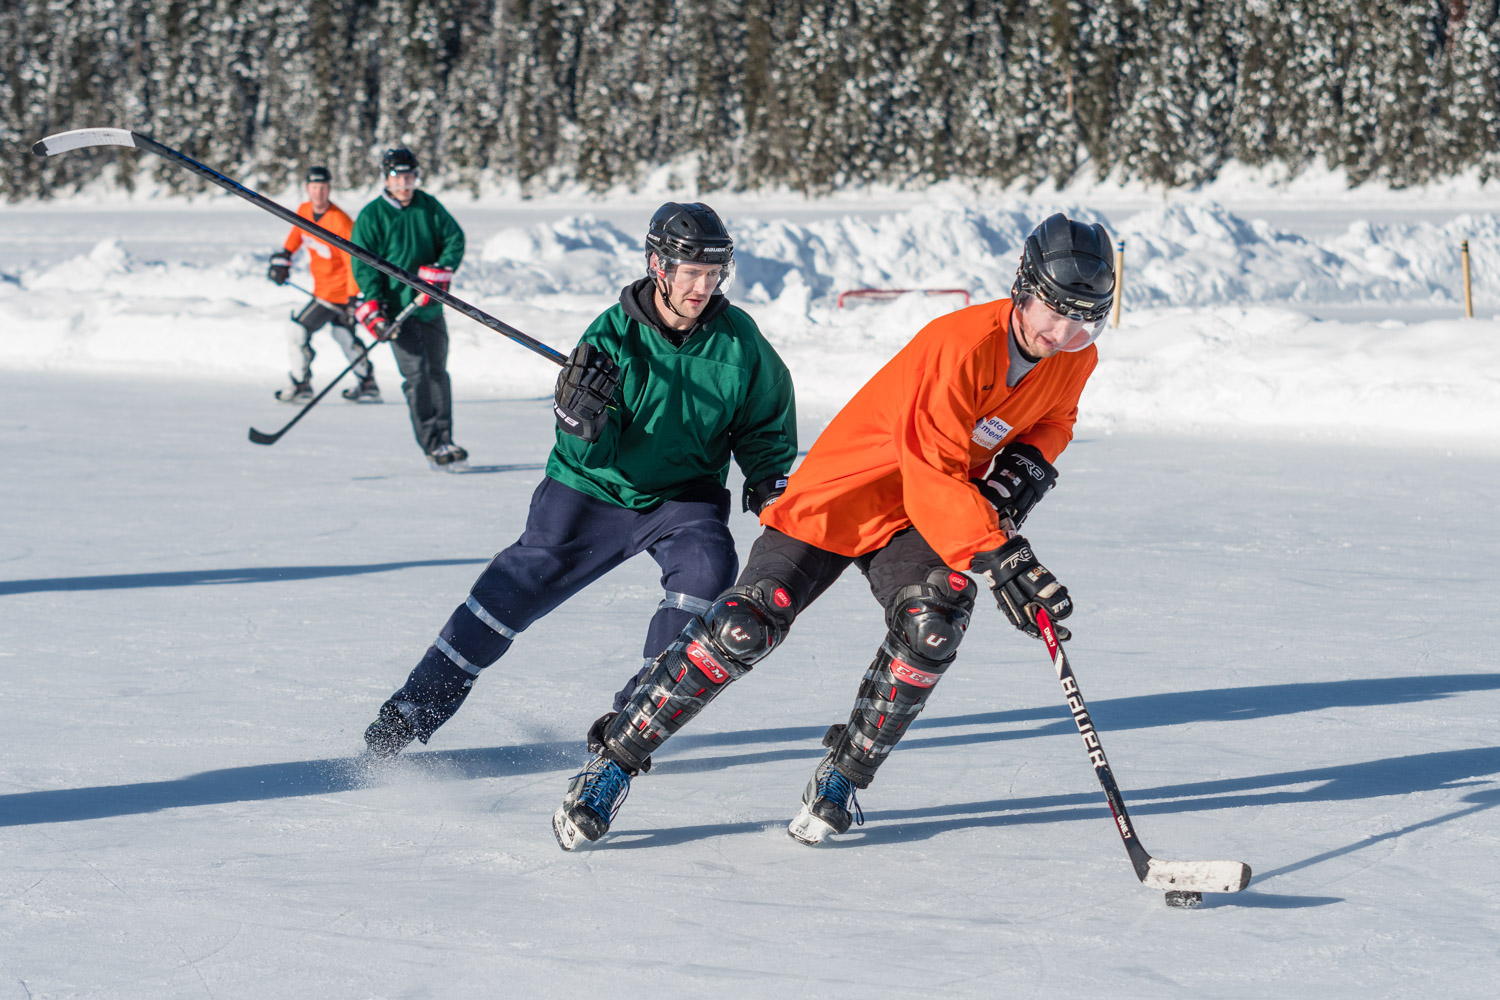 Ice hockey is fast paced and very physical. Somewhat of a contrast to the calm and fragile icy backdrop.